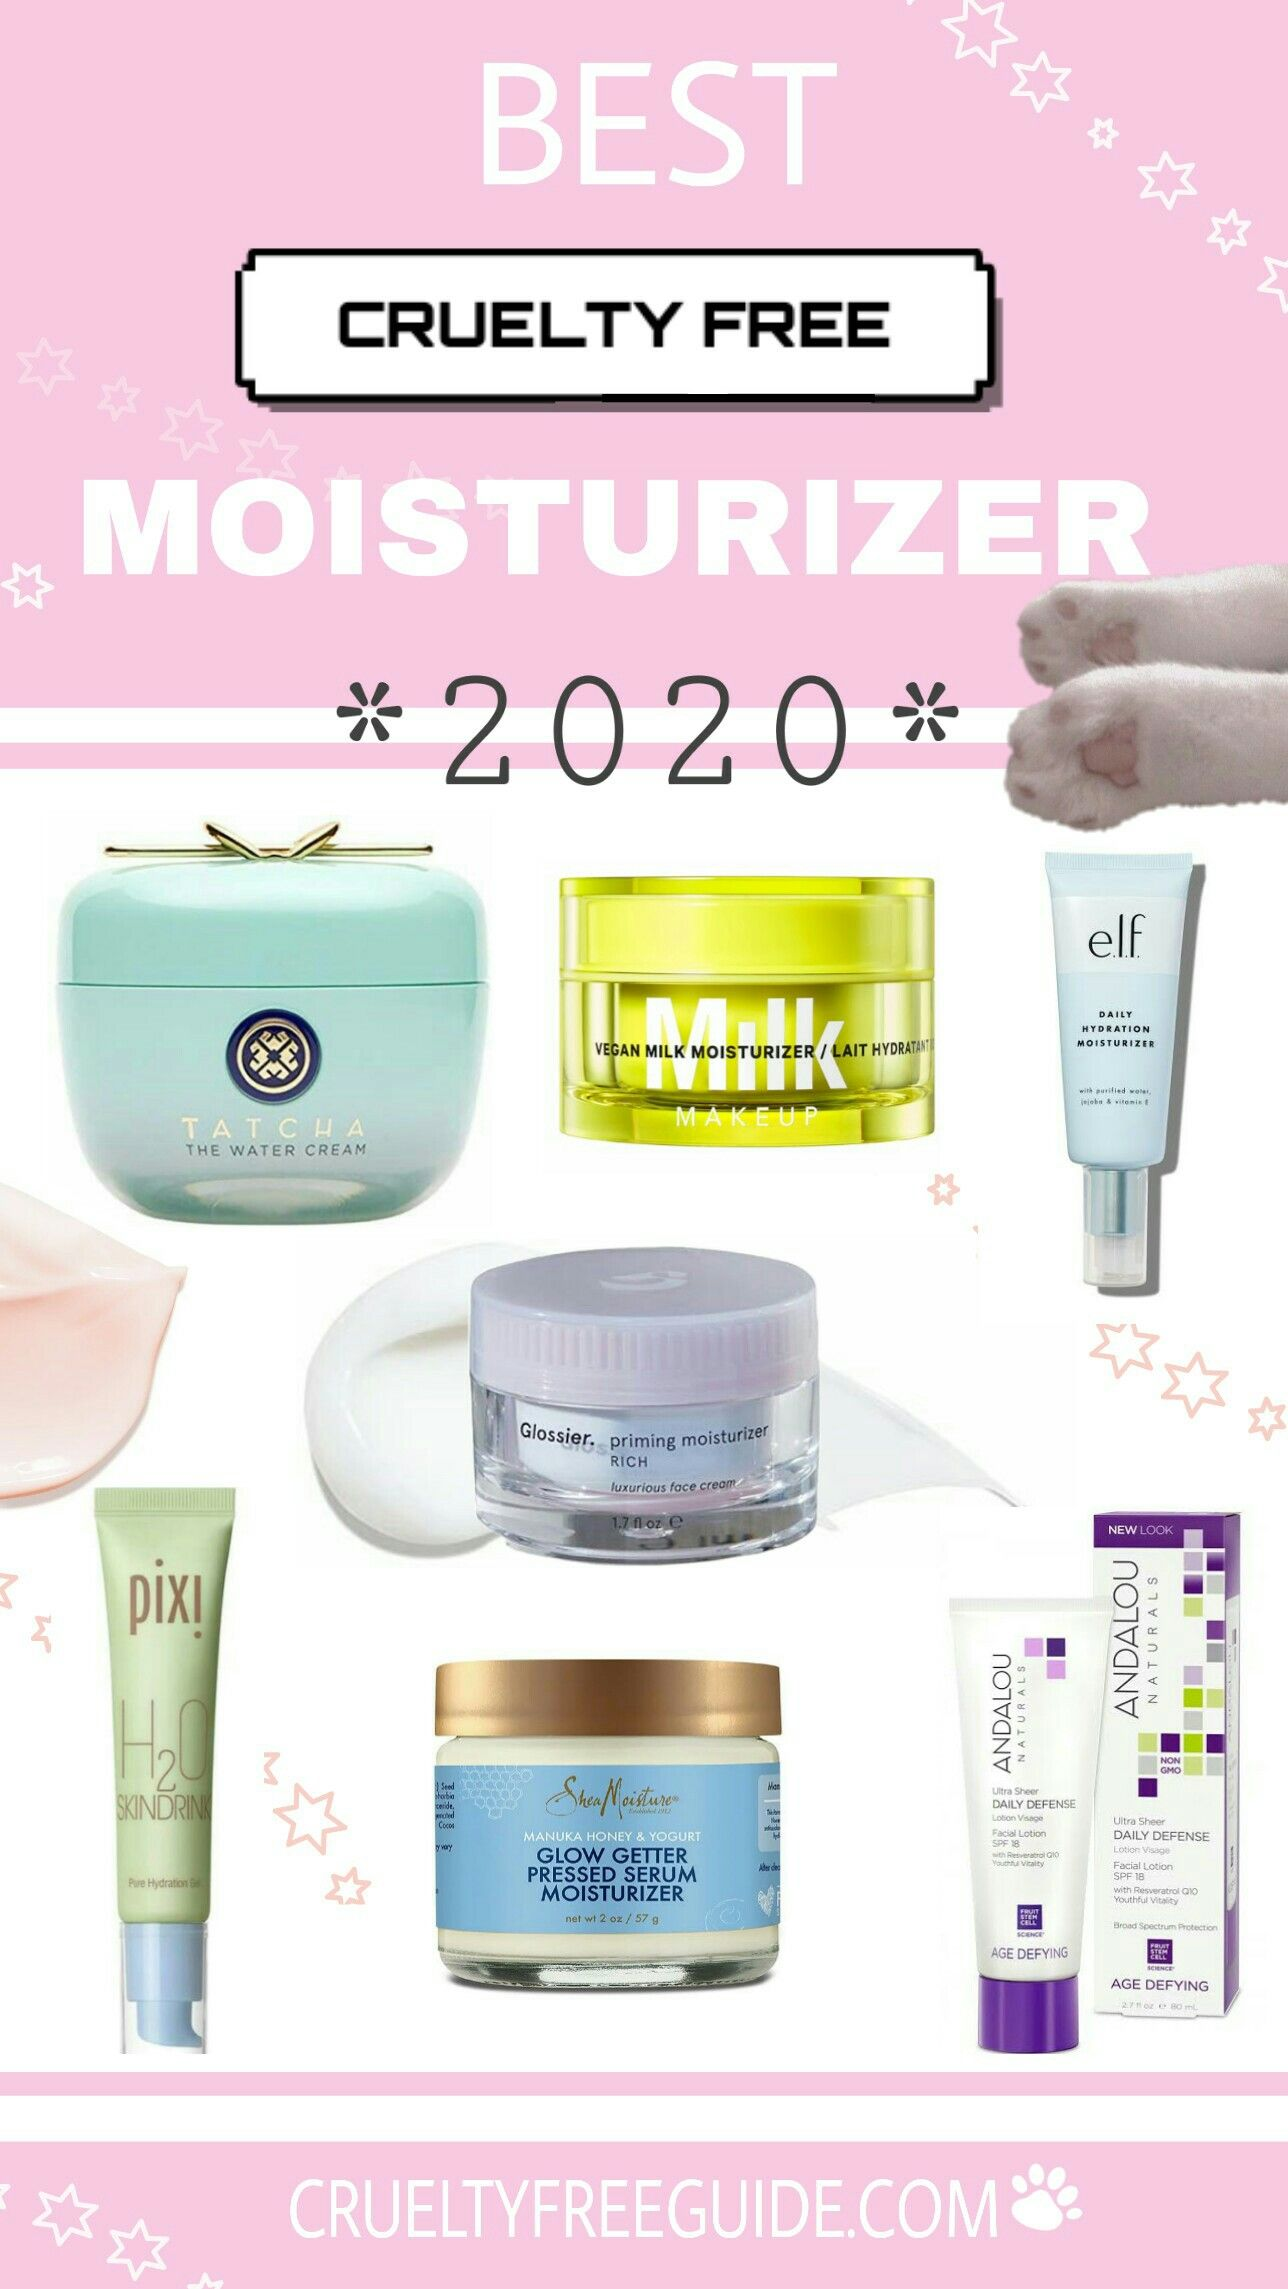 The BEST Cruelty Free Moisturizer in the market?🐷 Many options to choose from..❤ Included Drugstore buy, Vegan options🌲 Is your favourite on there?😊